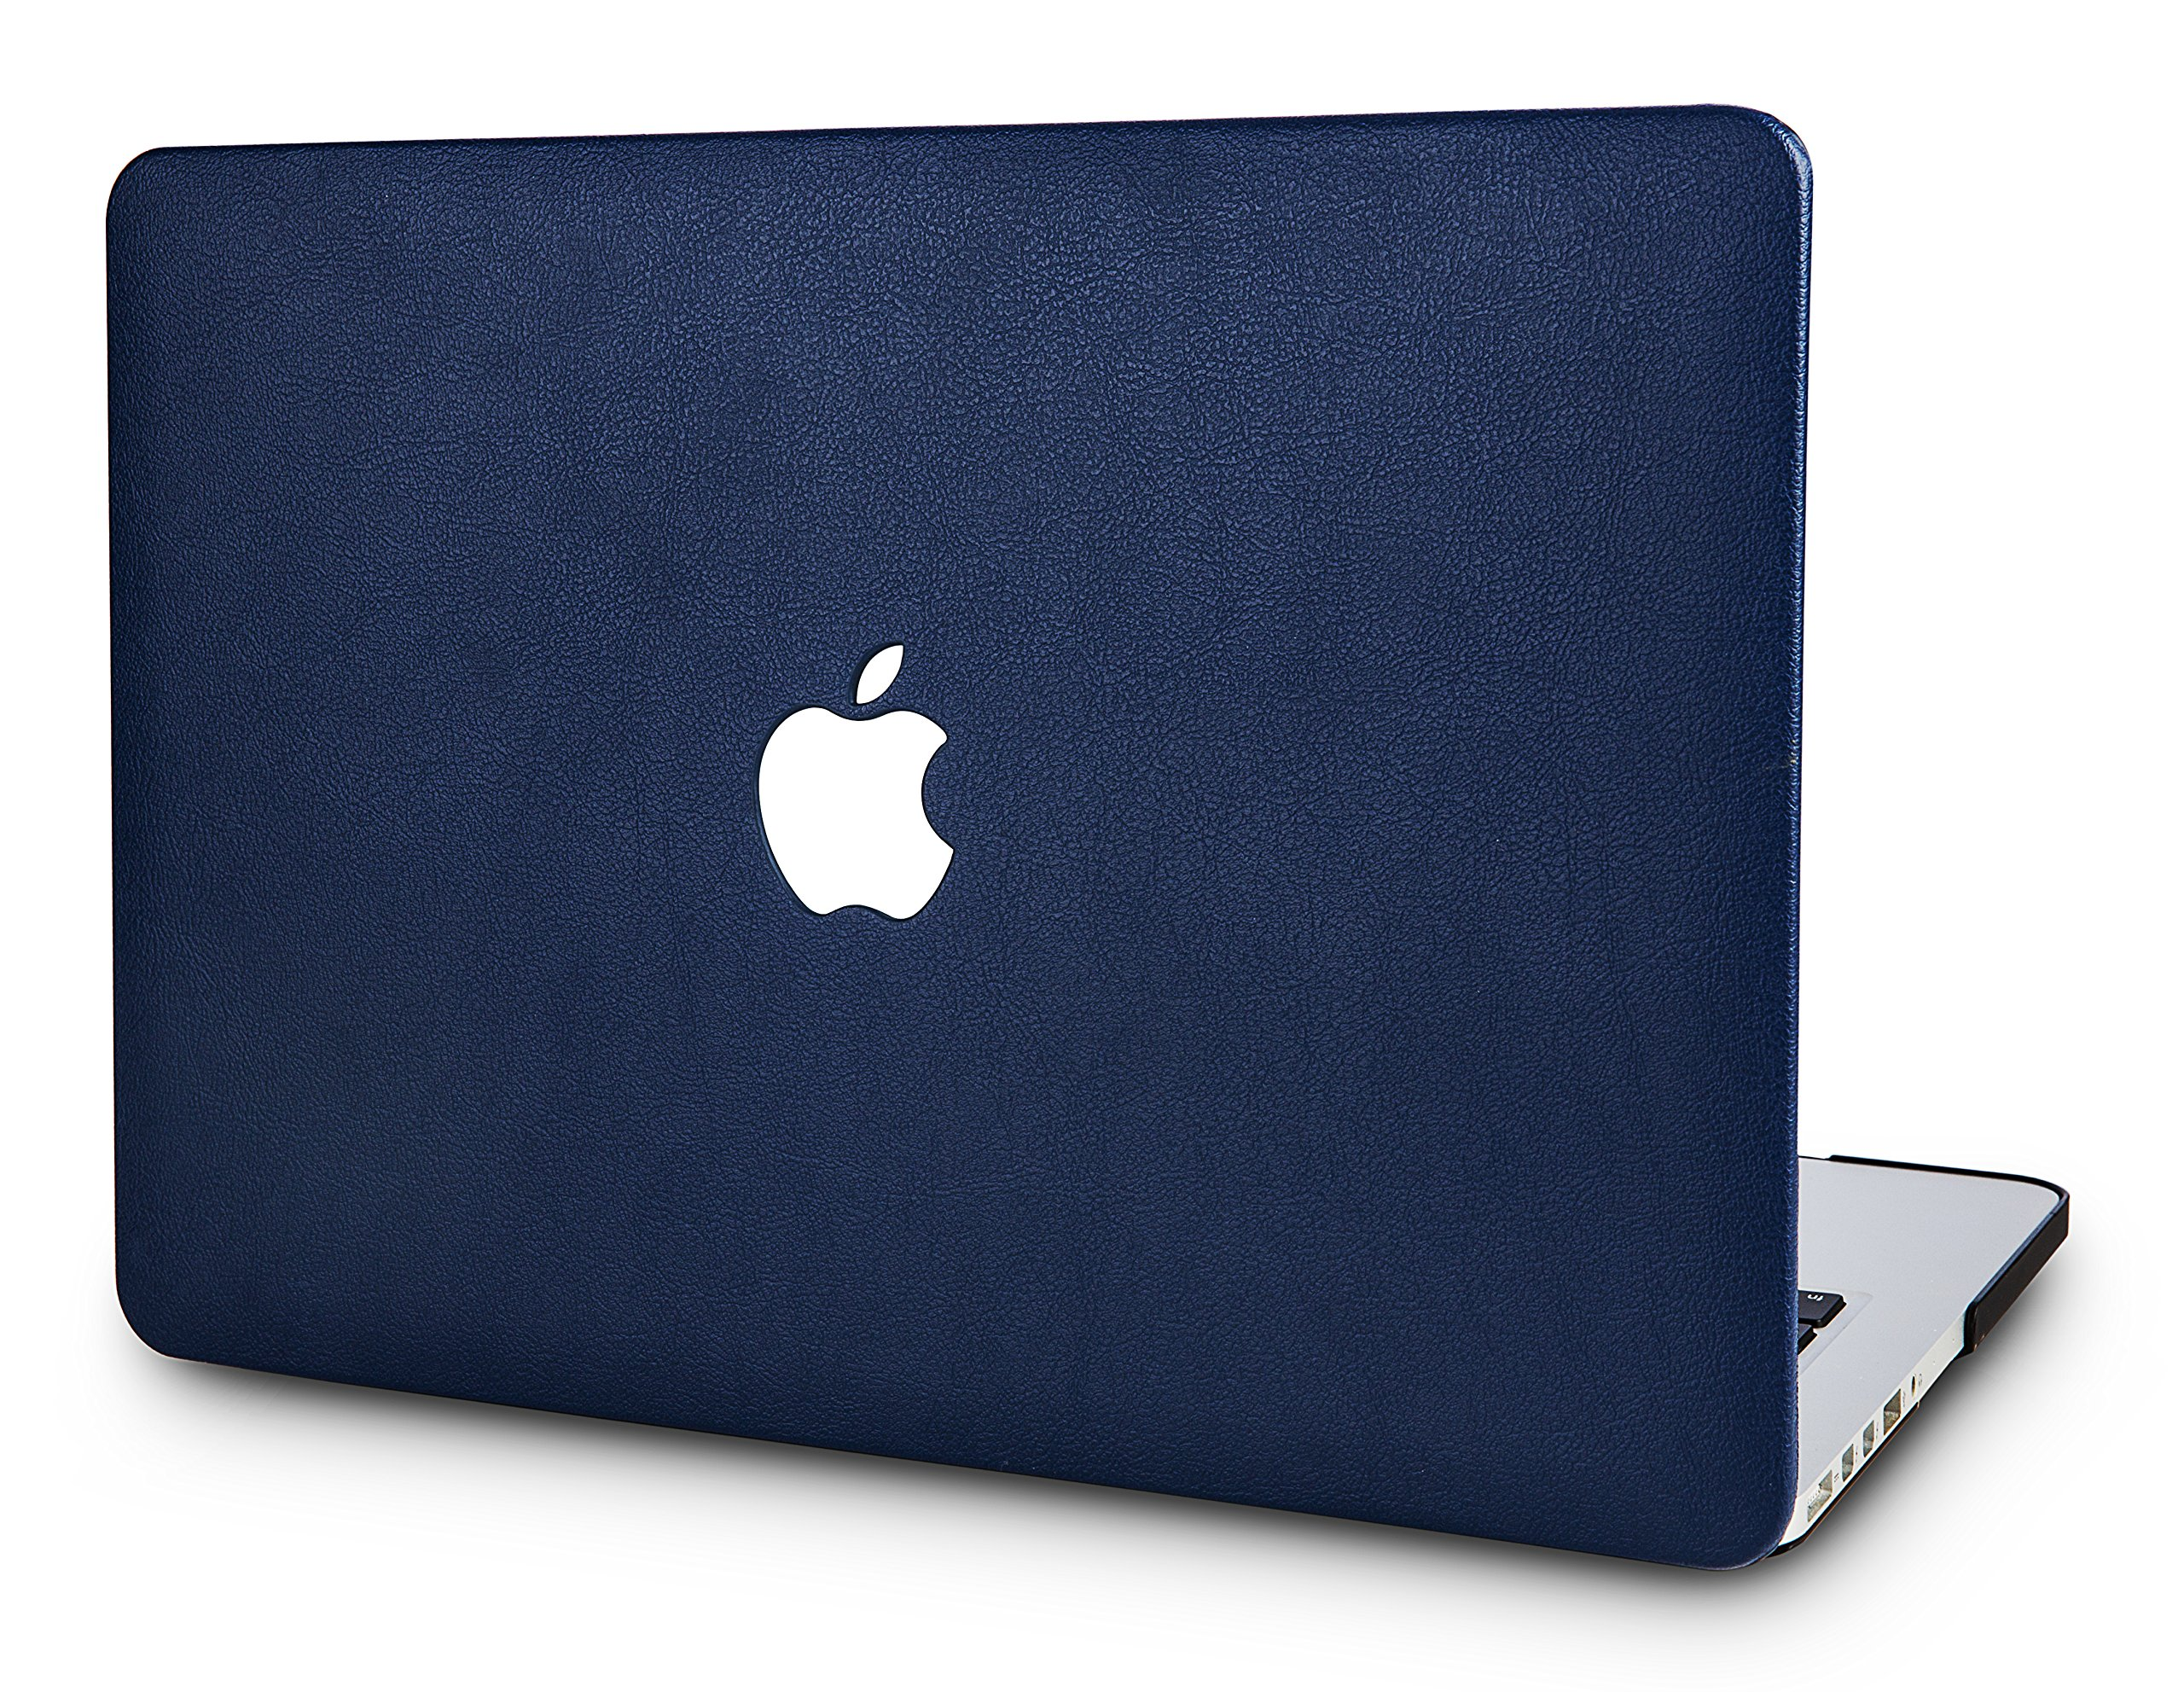 KEC Laptop Case for MacBook Pro 15'' (2019/2018/2017/2016) Italian Leather Cover A1990/A1707 Touch Bar (Navy Blue Leather)